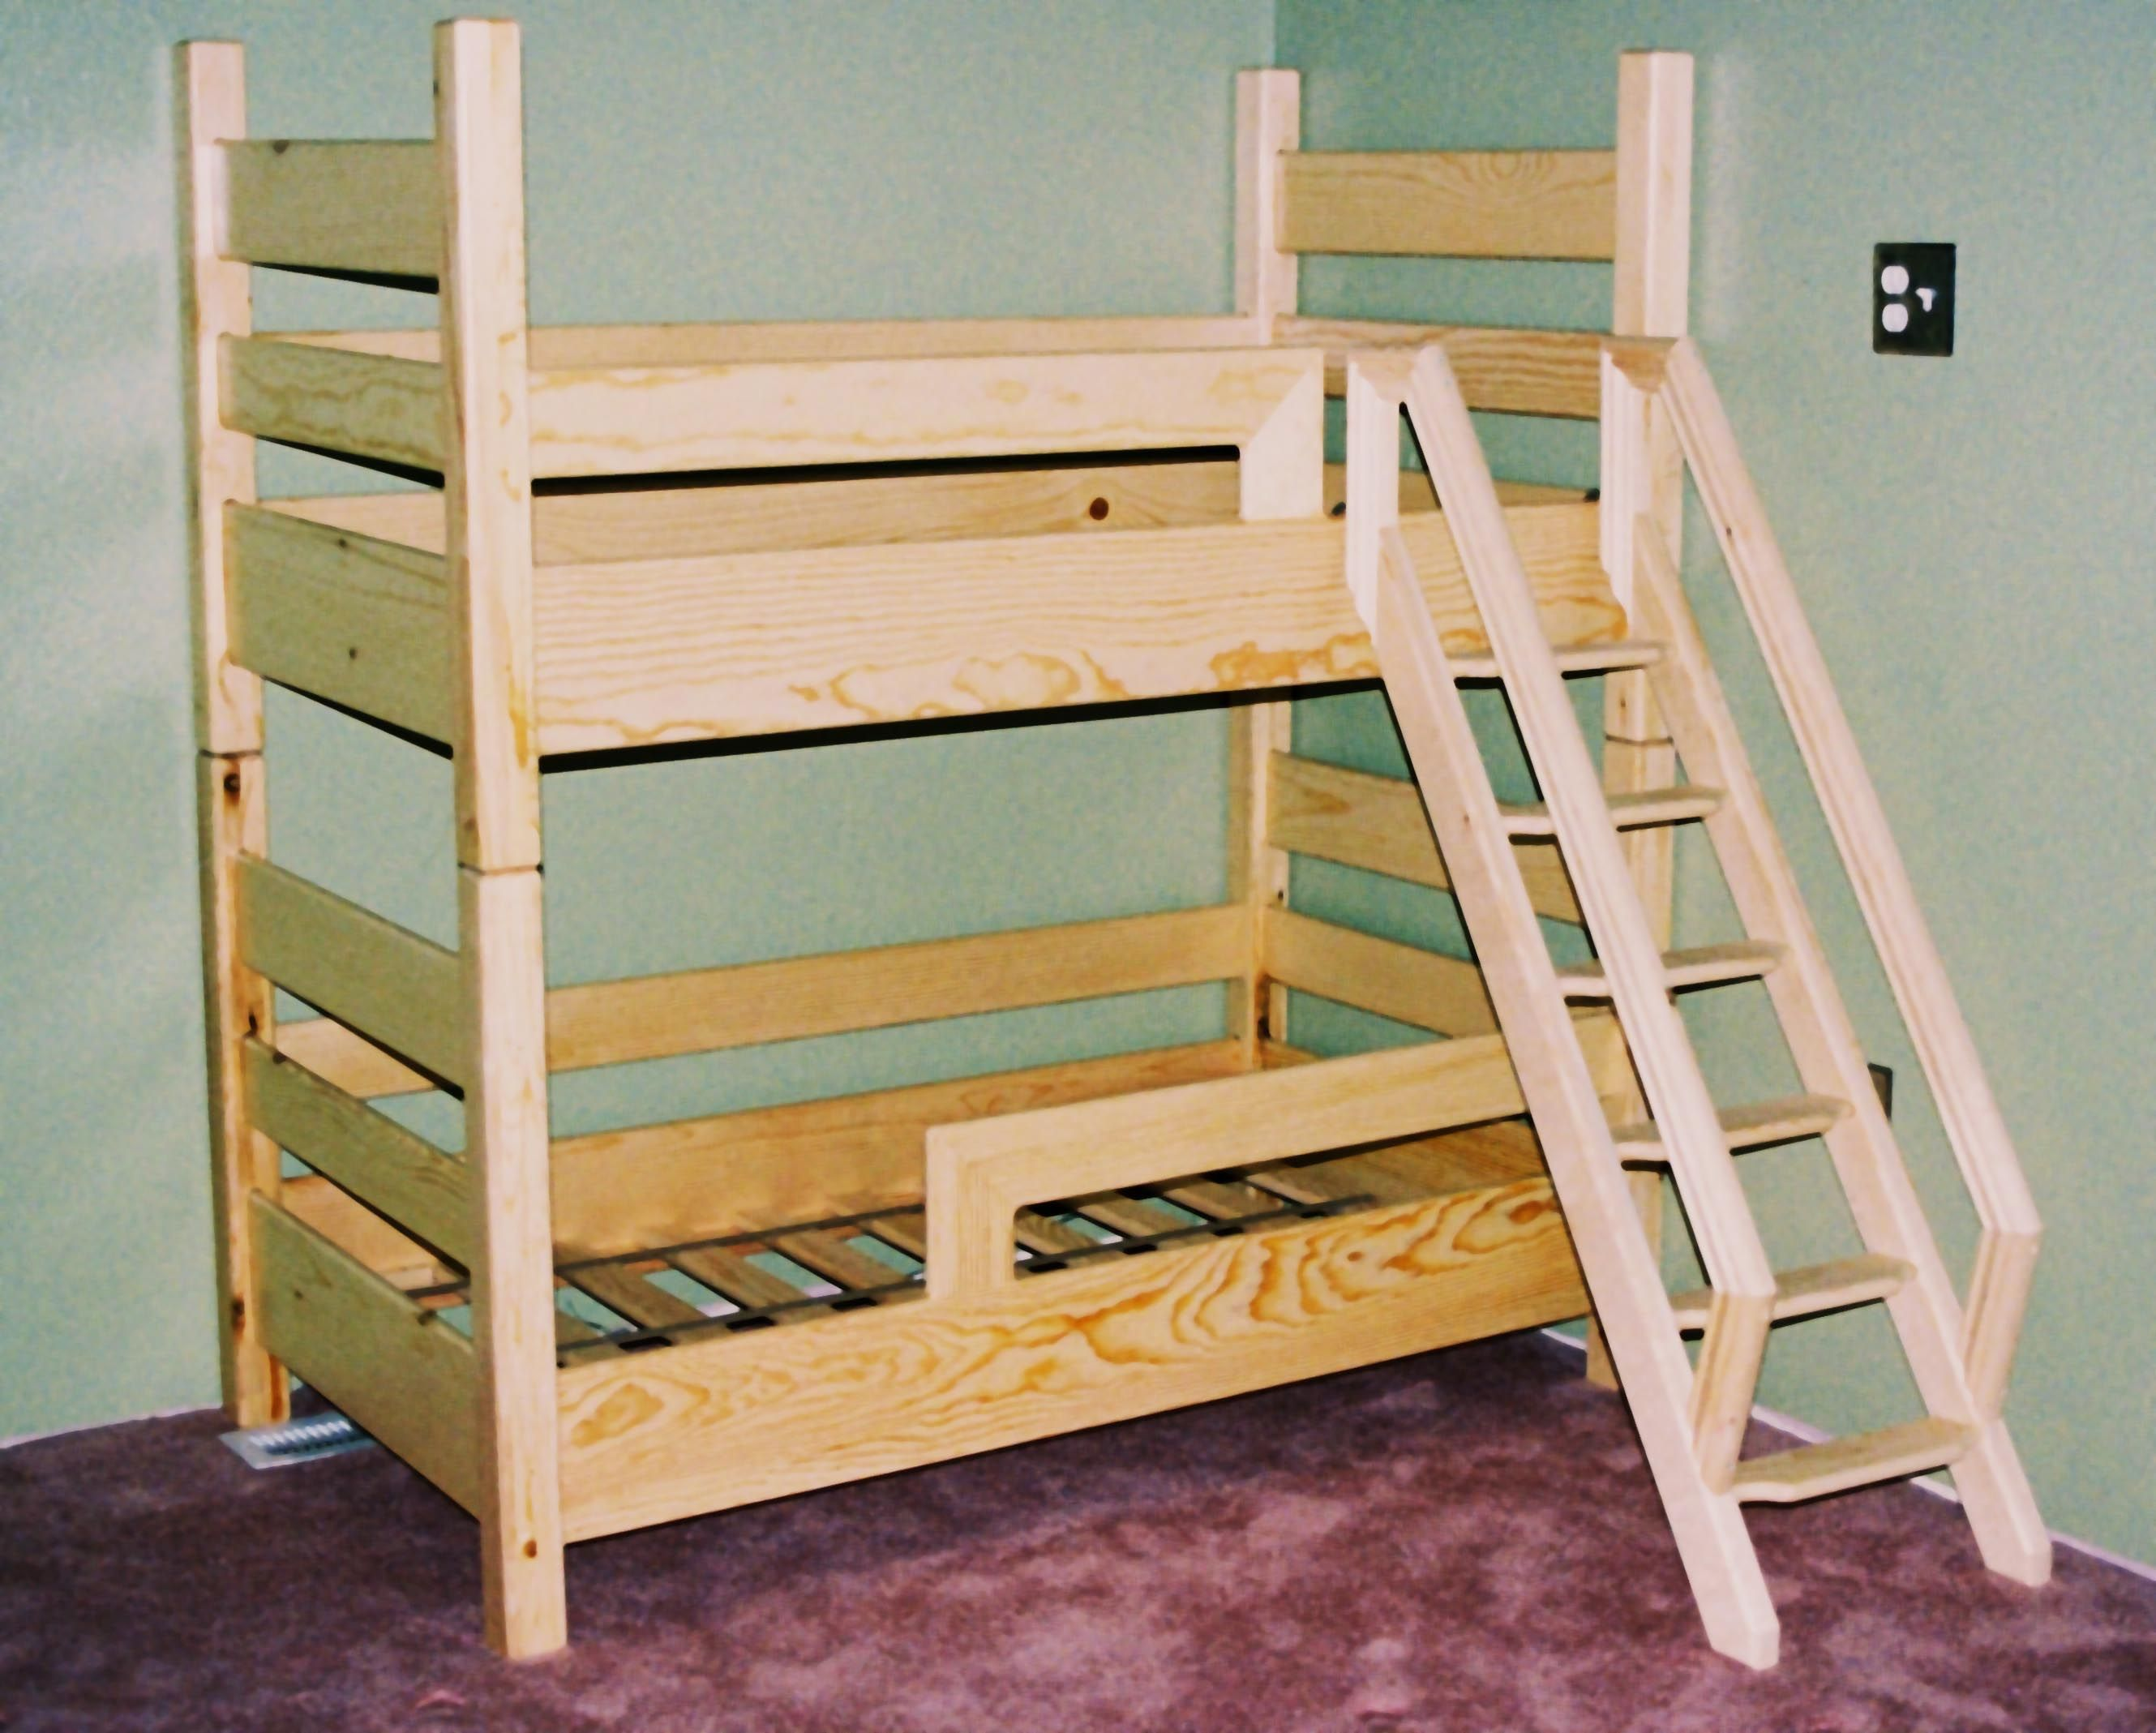 possible bunk bed ideas toddler bunk beds - Bunk Beds For Kids Plans